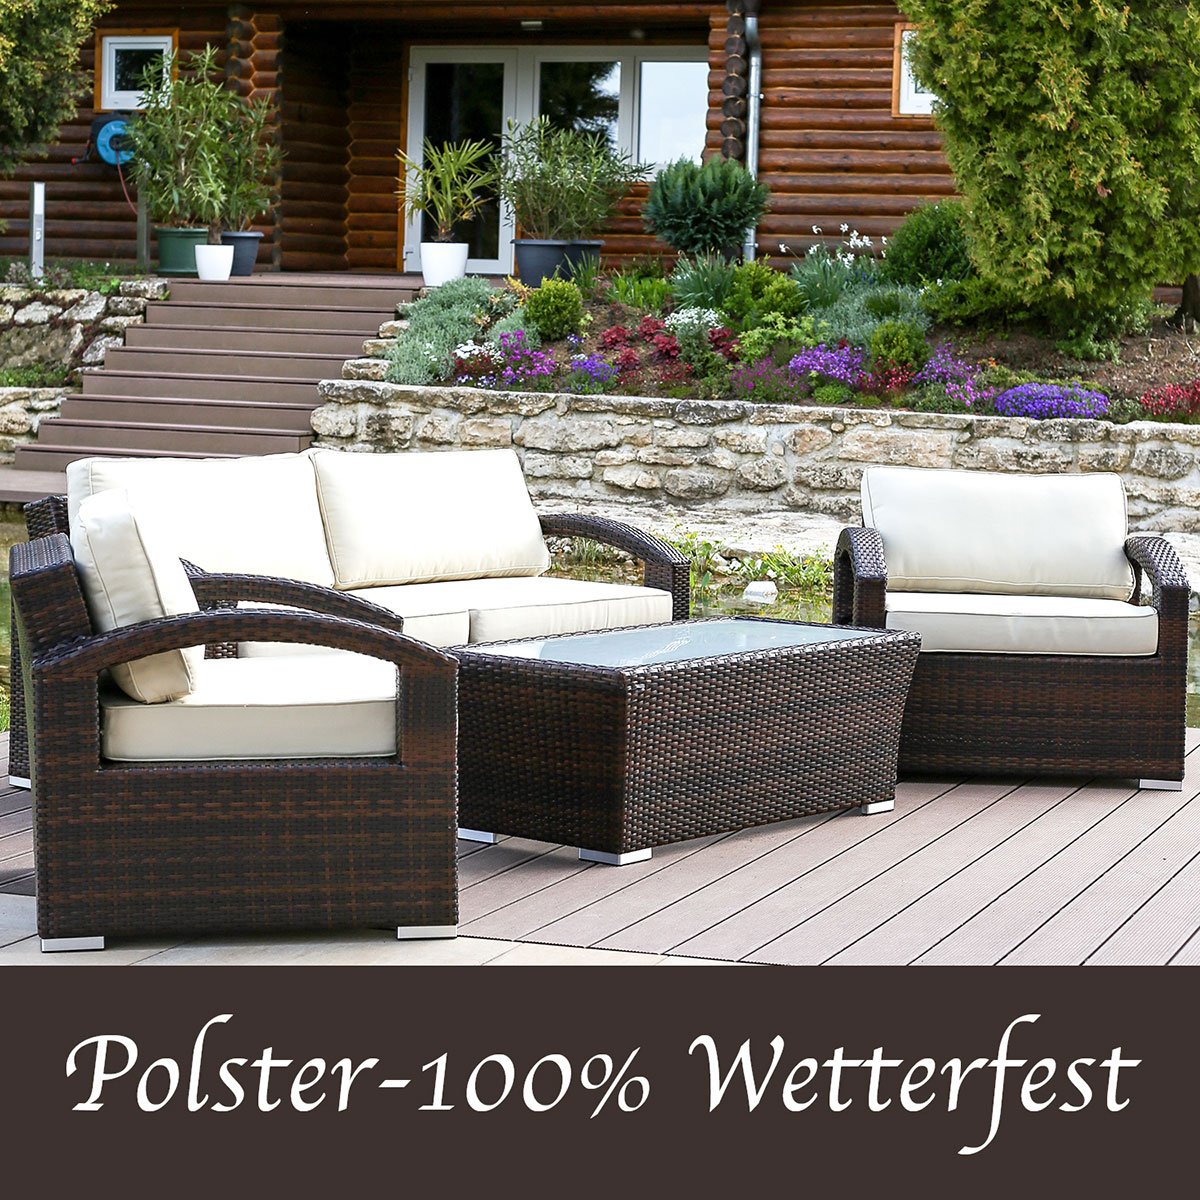 Loungemöbel outdoor rattan  art decor Polyrattan Gartenmöbel Lounge - Lounge Möbel, Lounge Set ...